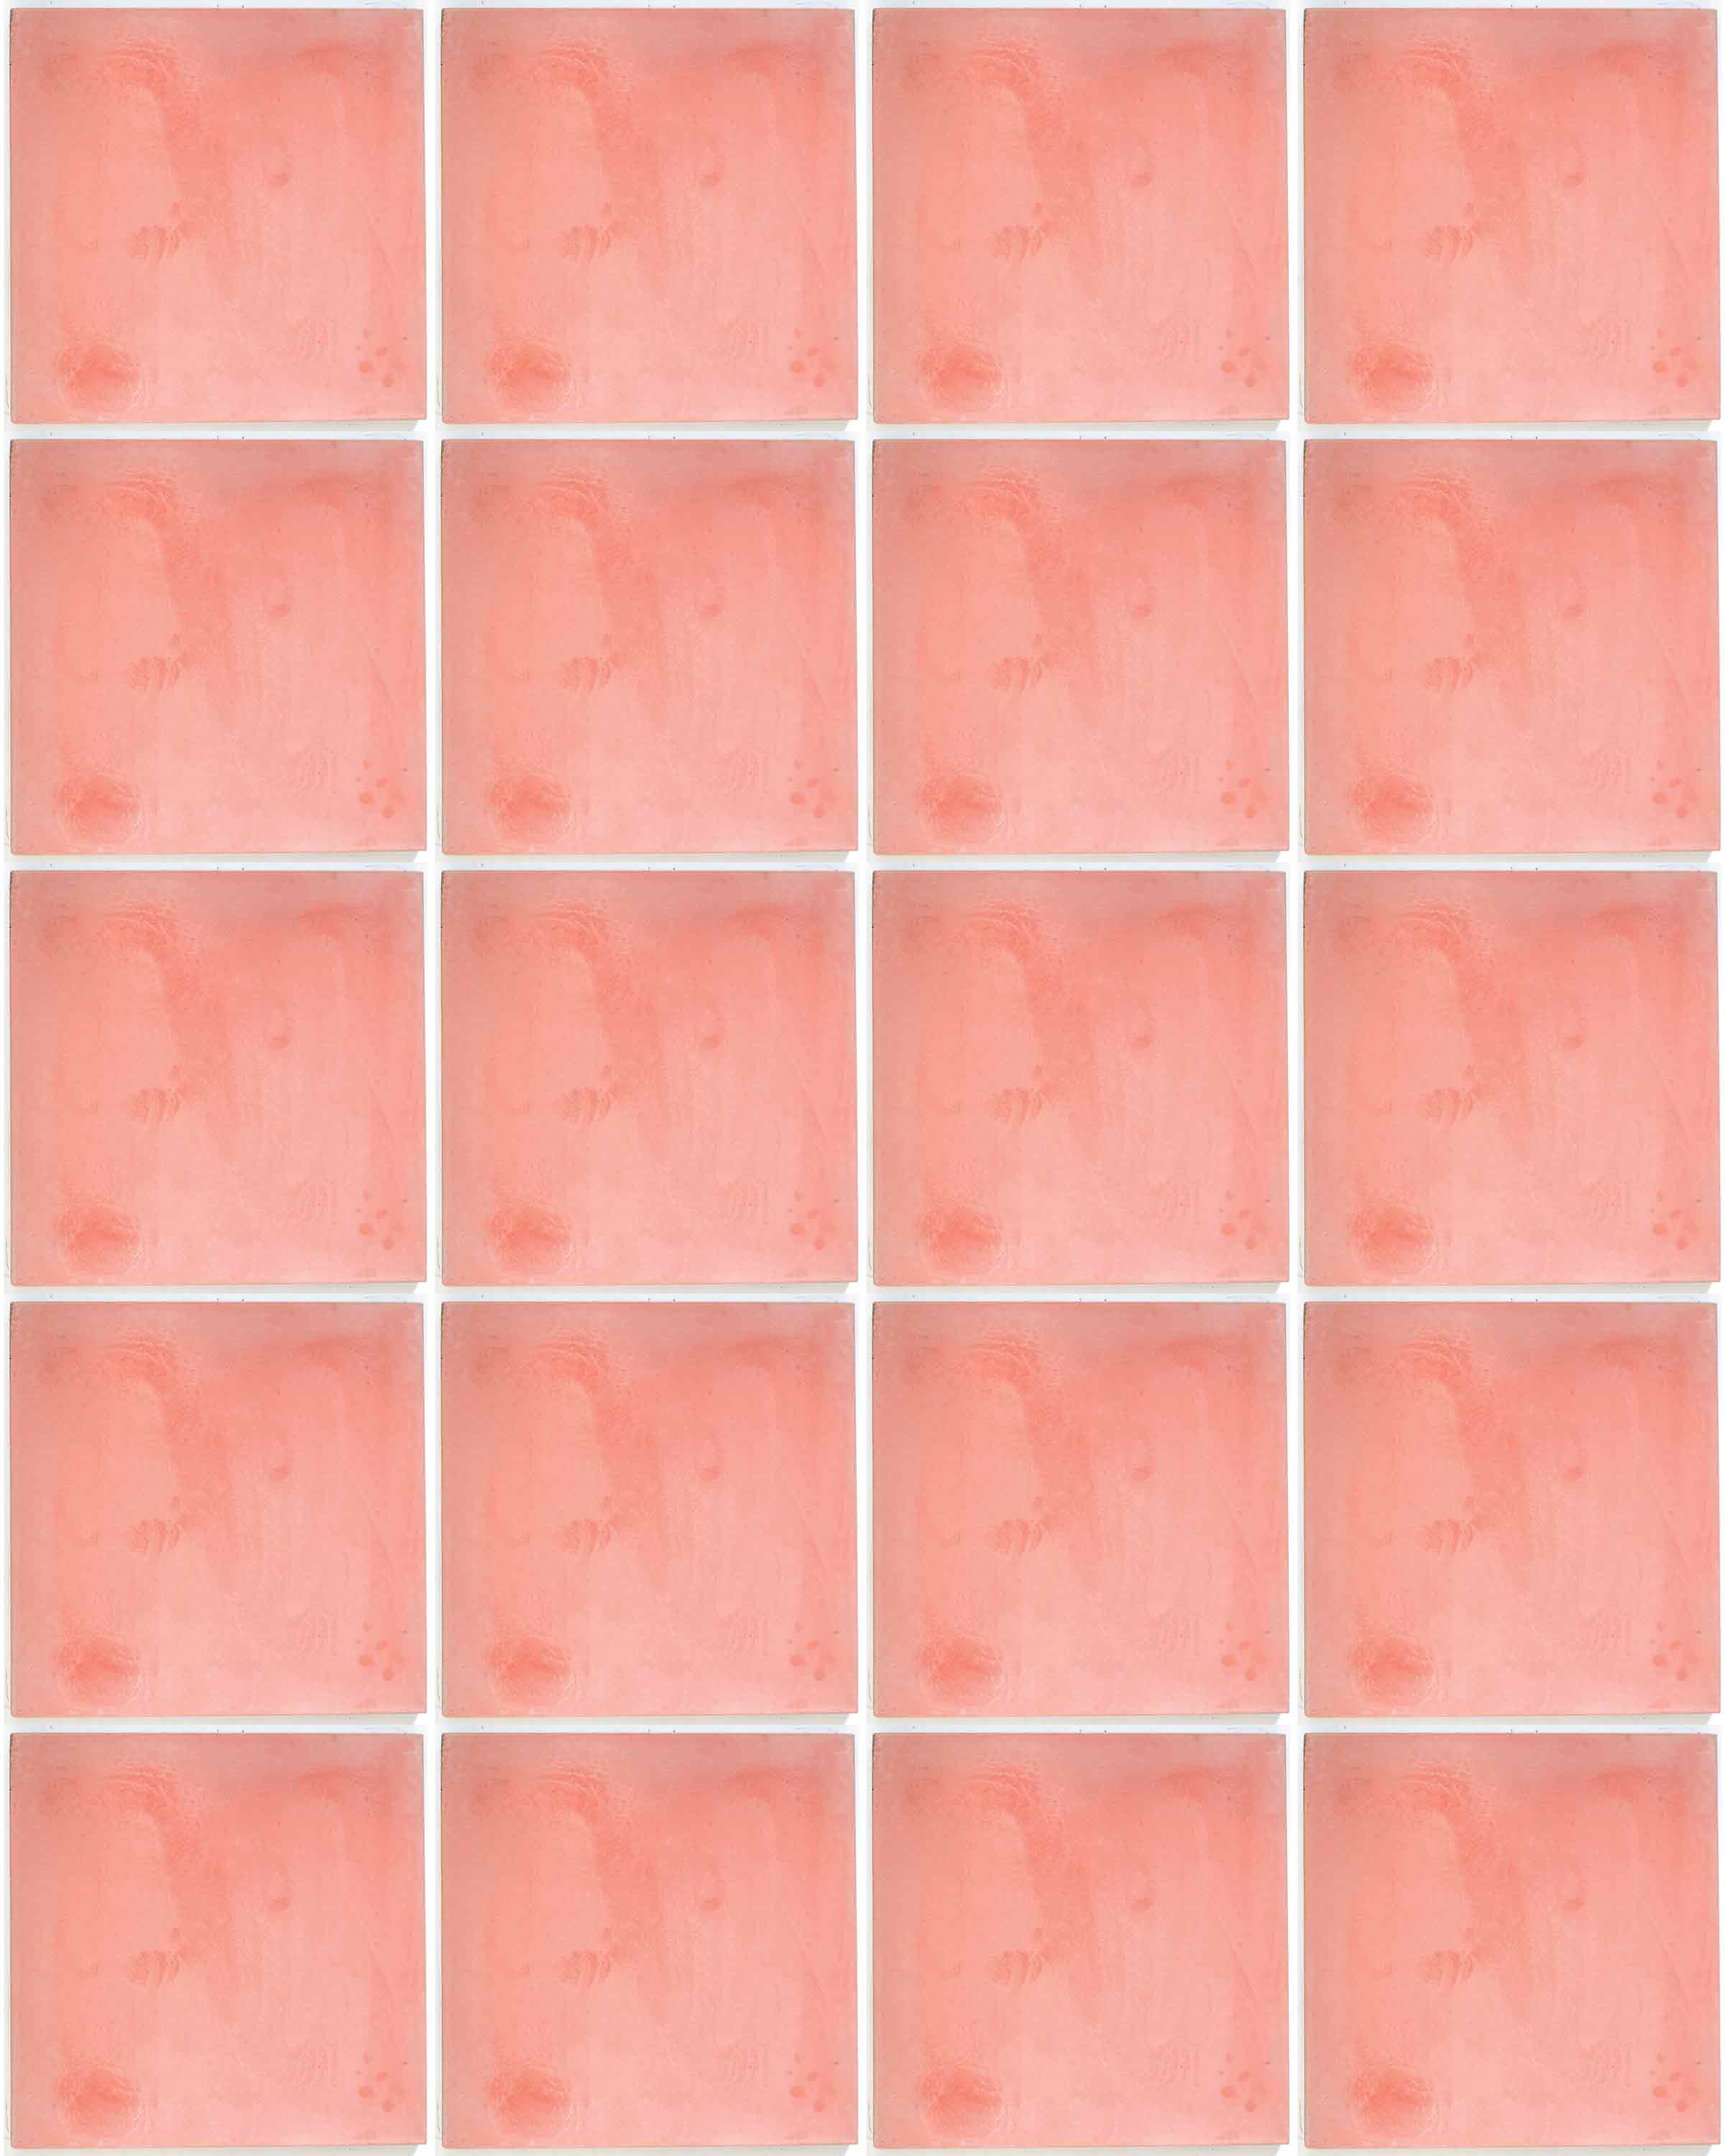 Spanish pink encaustic tile milagros pink hand made encaustic floor tiles dailygadgetfo Choice Image